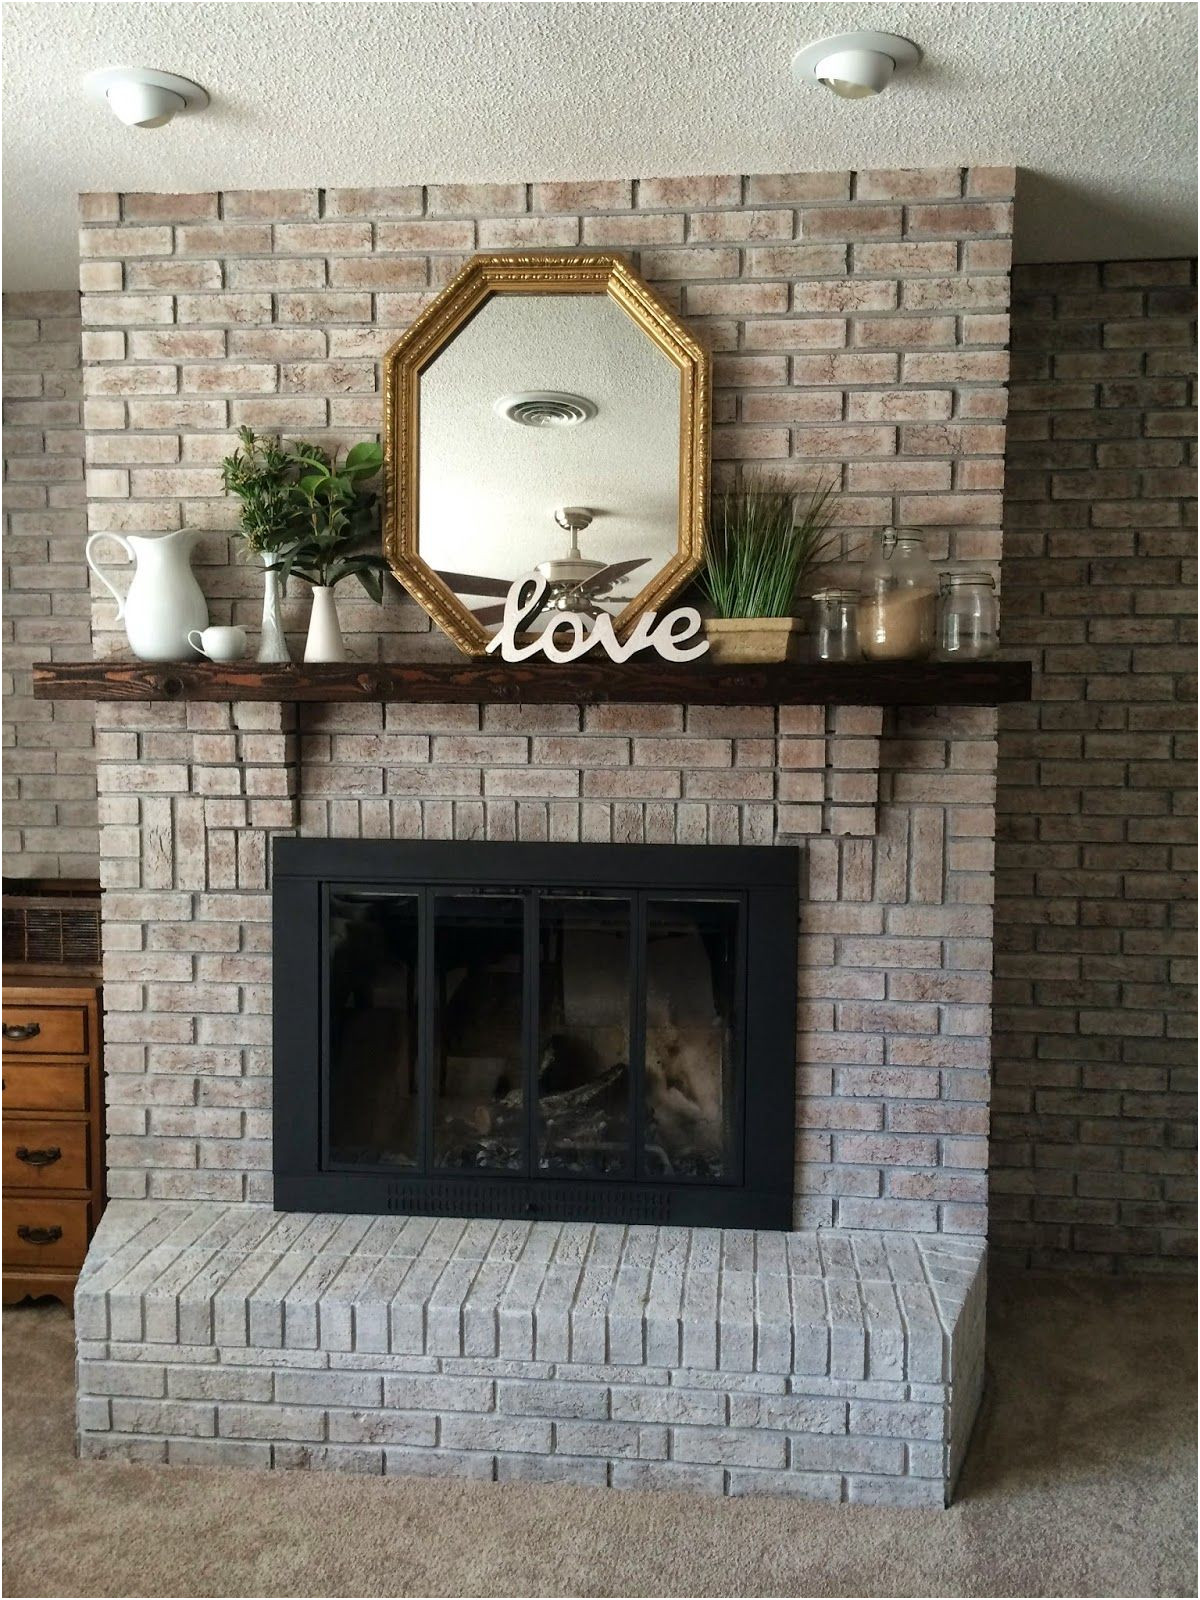 Painting Fireplace Brick Ideas Best Of White Washing Brick with Gray Beige Walking with Dancers